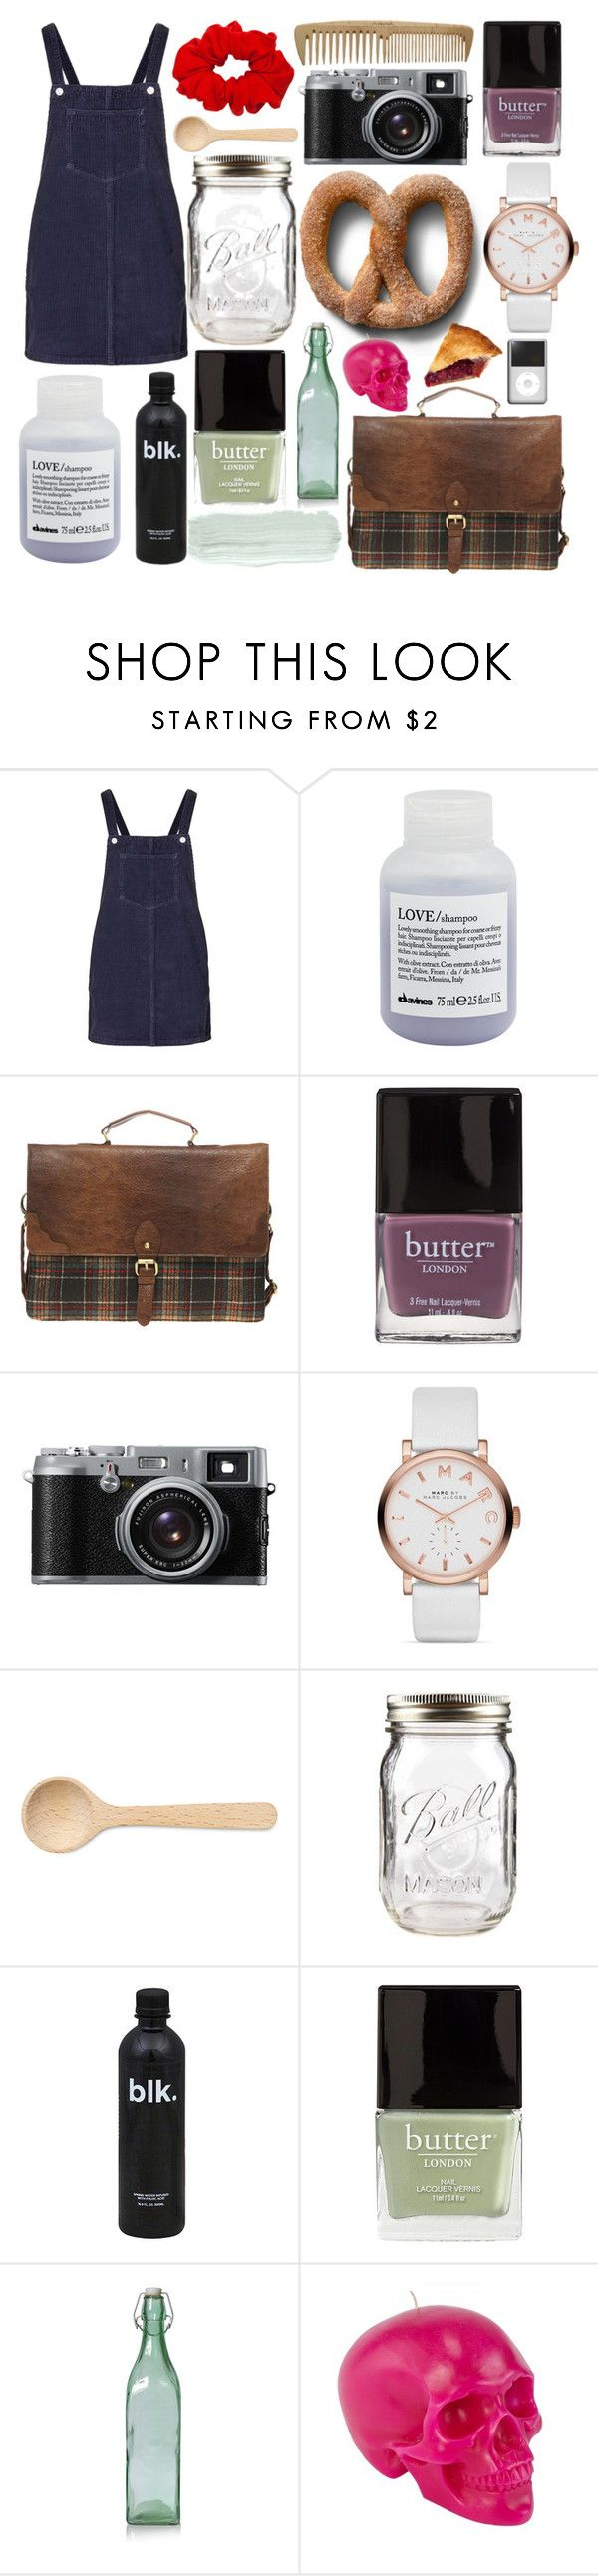 """""""smile, you're beautiful"""" by paper-towns ❤ liked on Polyvore featuring Topshop, Davines, ASOS, Butter London, John Lewis, Marc Jacobs, HAY, H2O+ and D.L. & Co."""